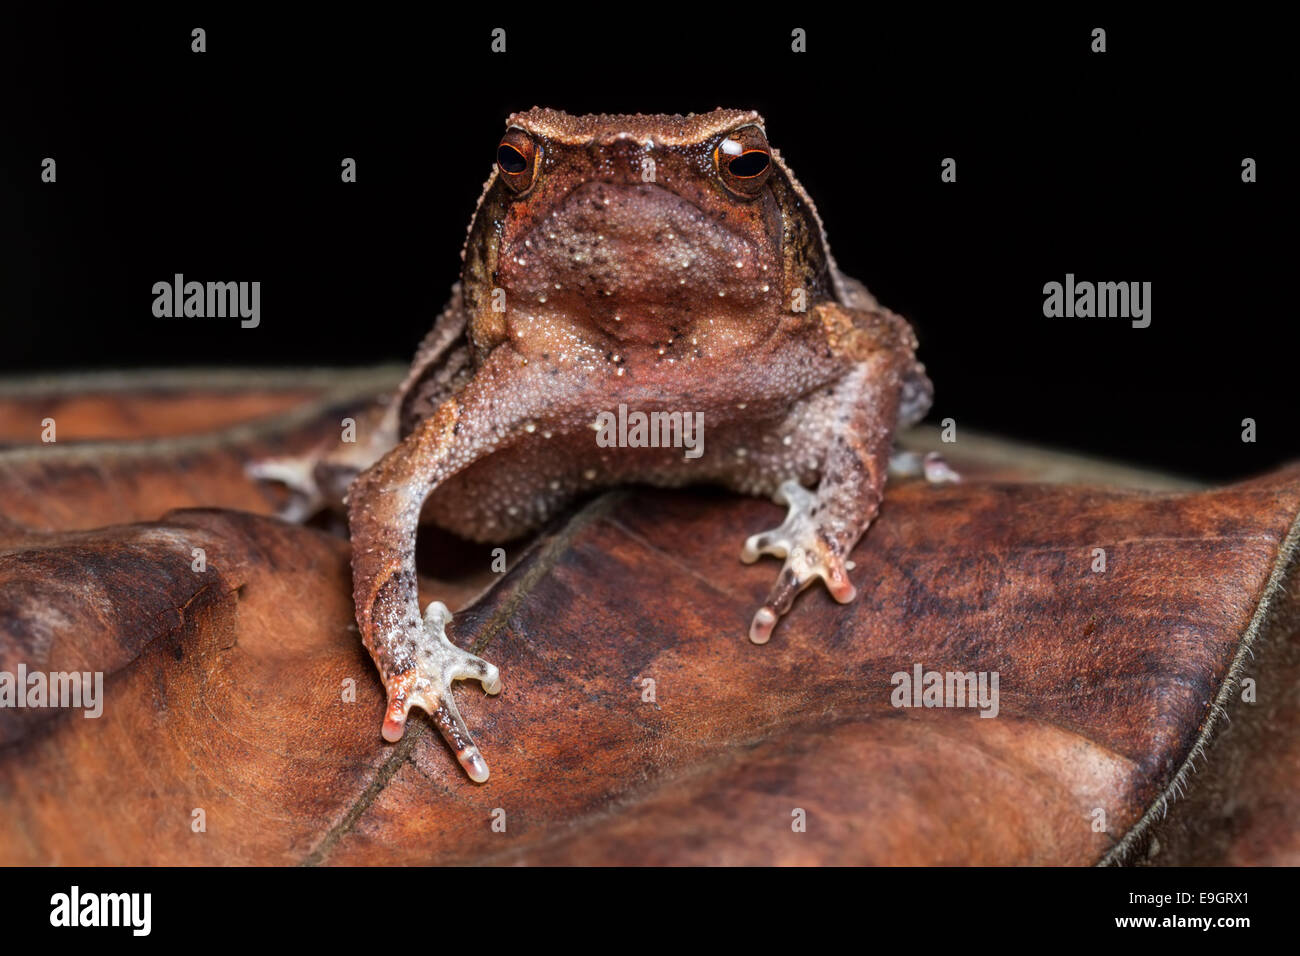 Black-spotted Sticky Frog (Kalophrynus pleurostigma) in a Malaysian tropical rainforest at night - Stock Image